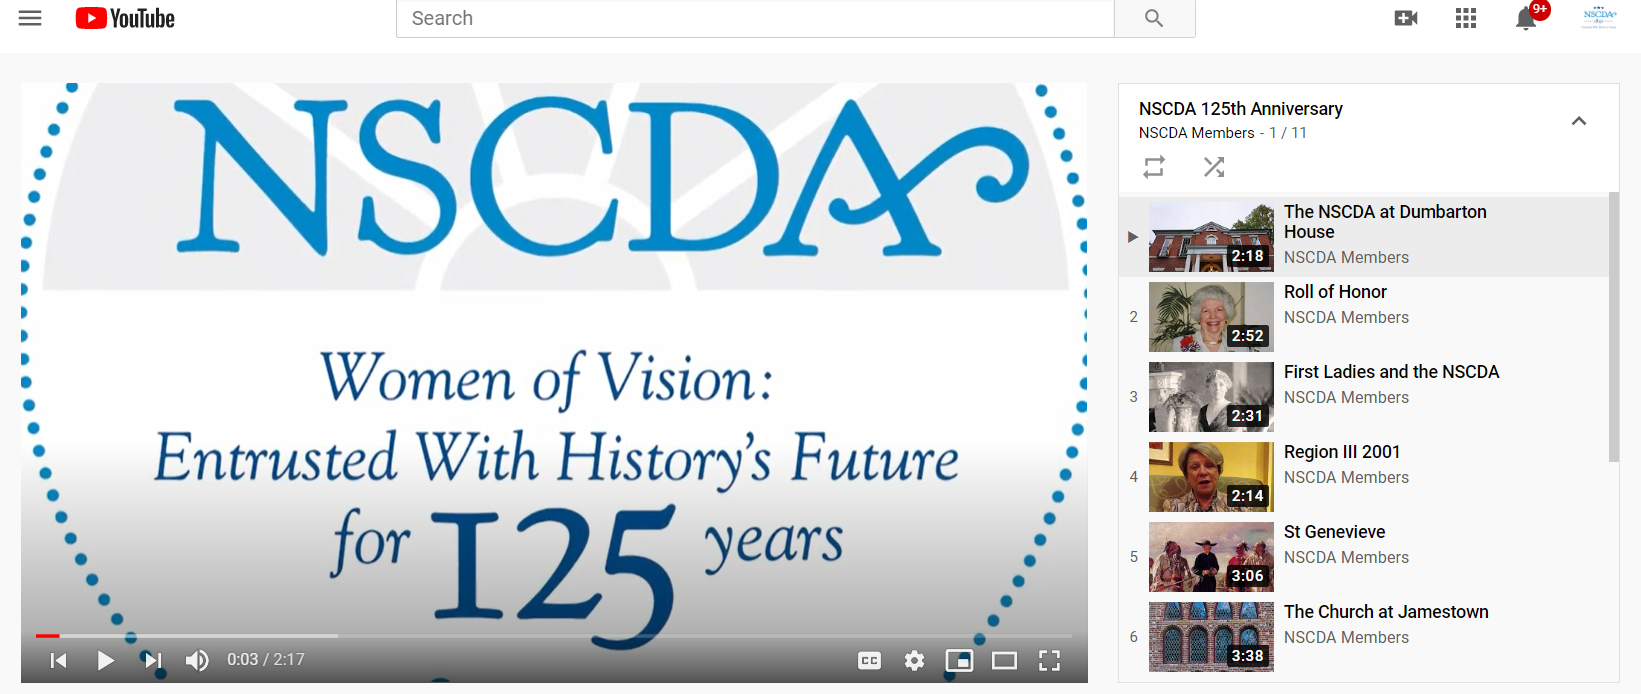 125th Anniversary logo on YouTube page